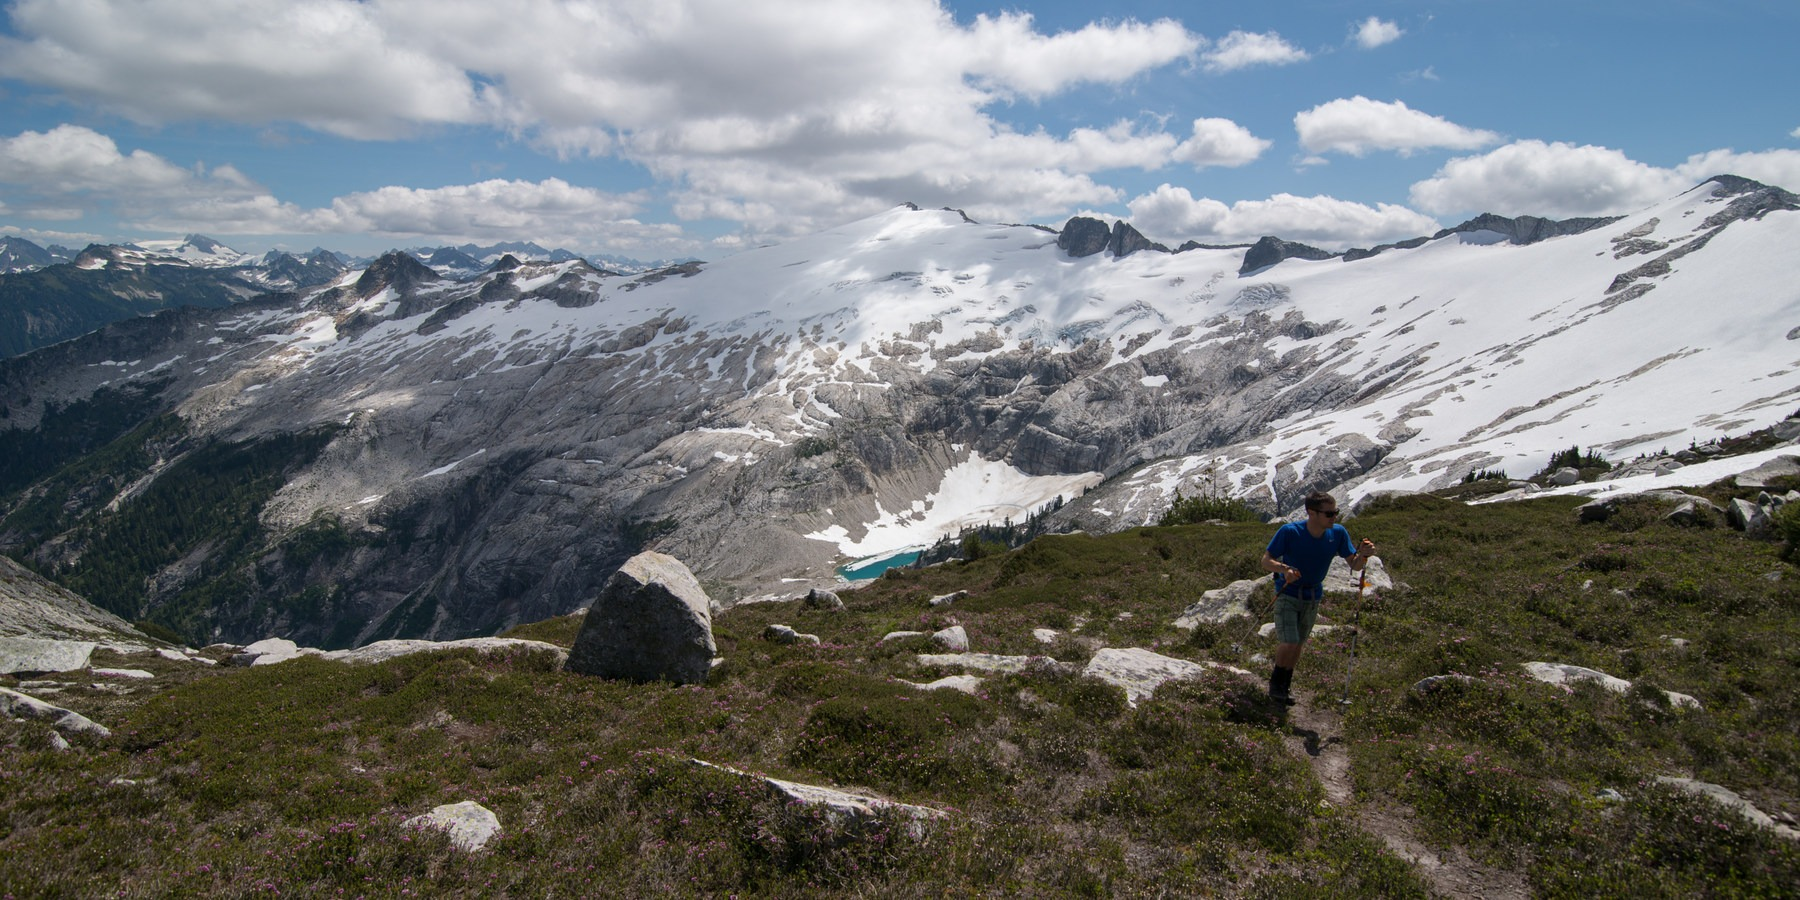 Washington's Best Backpacking Trips - Outdoor Project